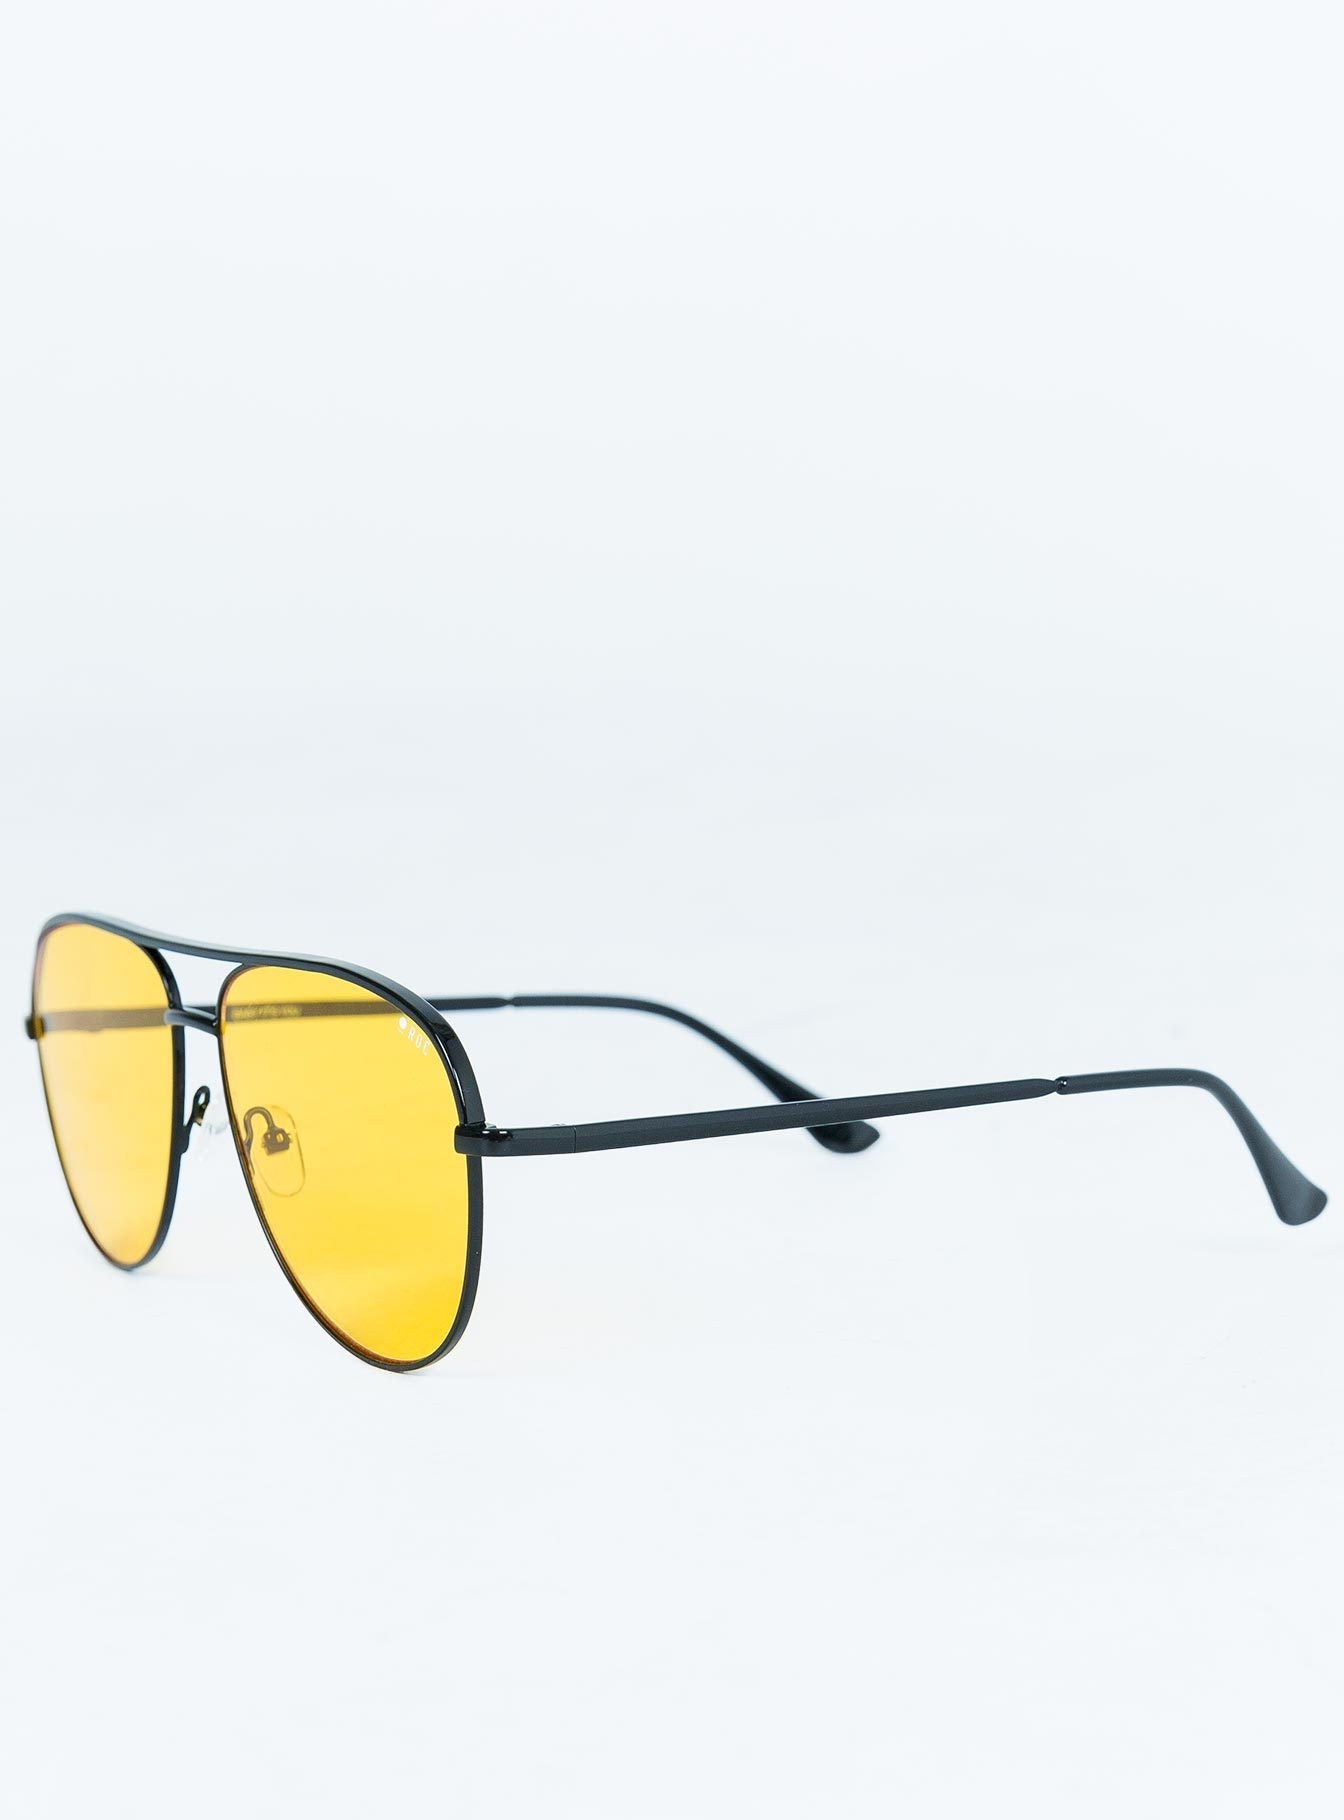 Baby Its You Sunglasses Black / Yellow